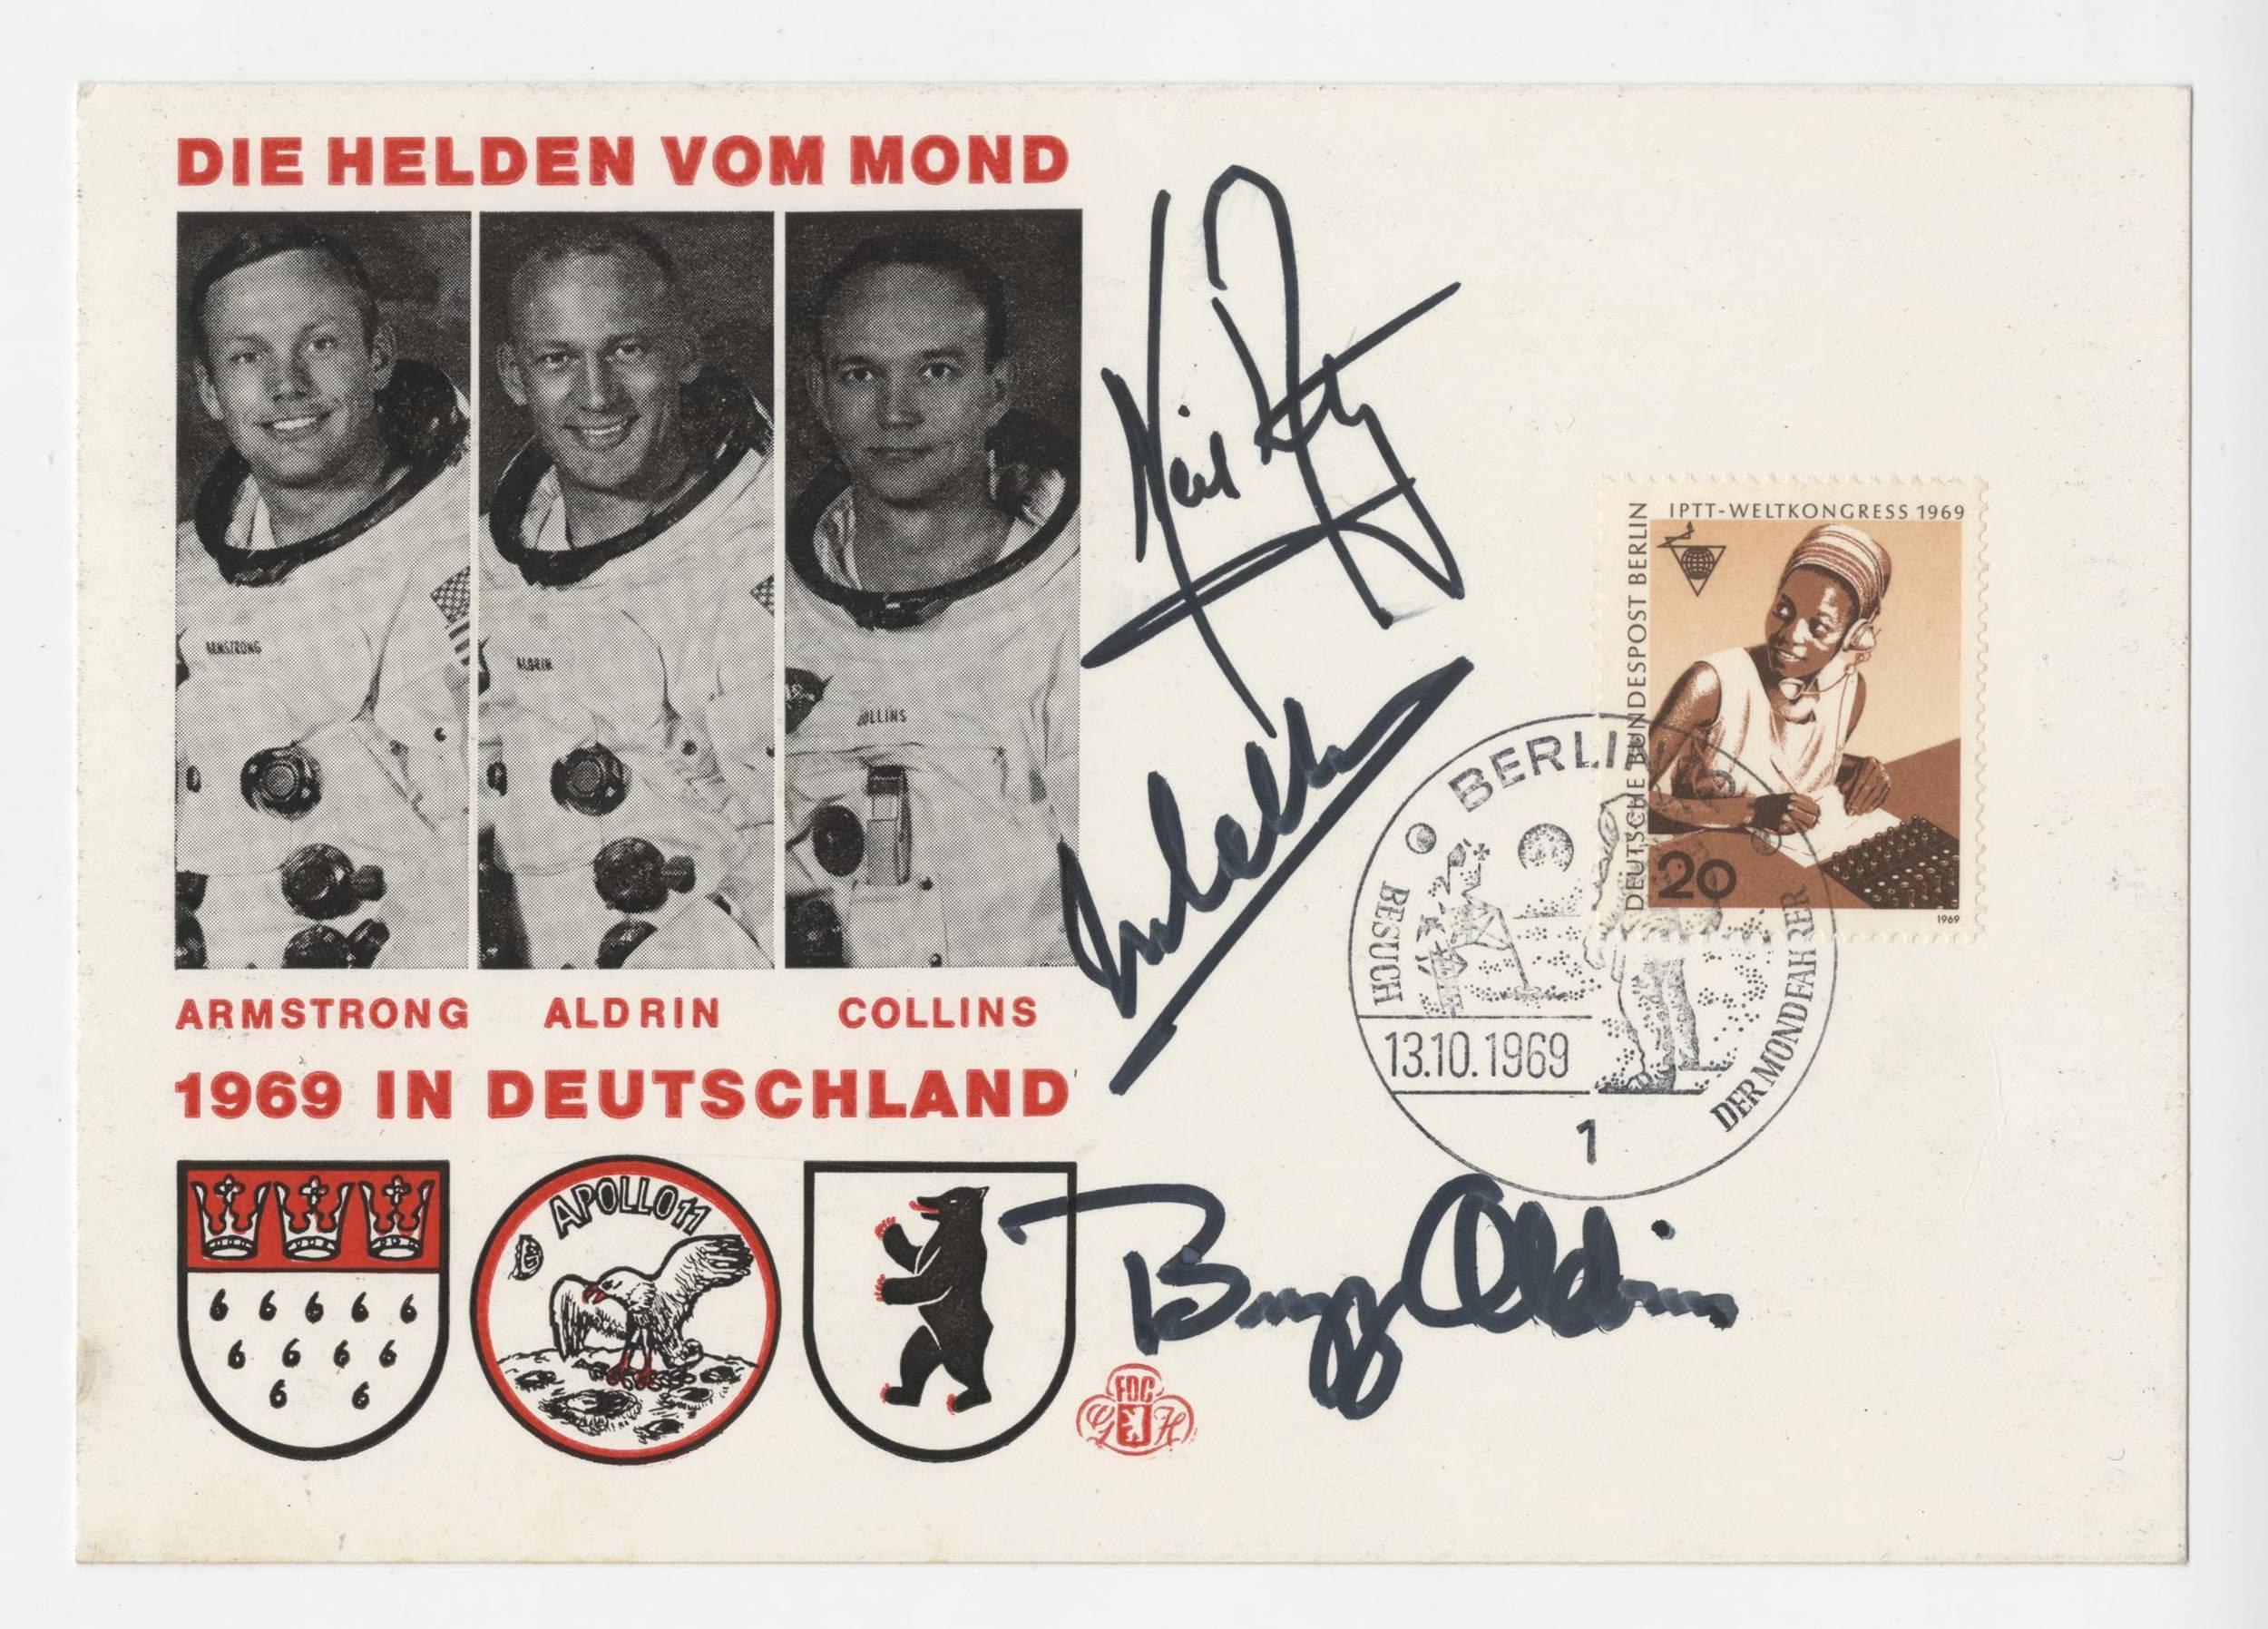 Apollo 11 Crew Signed German Cover, Armstrong, Aldrin and Collins